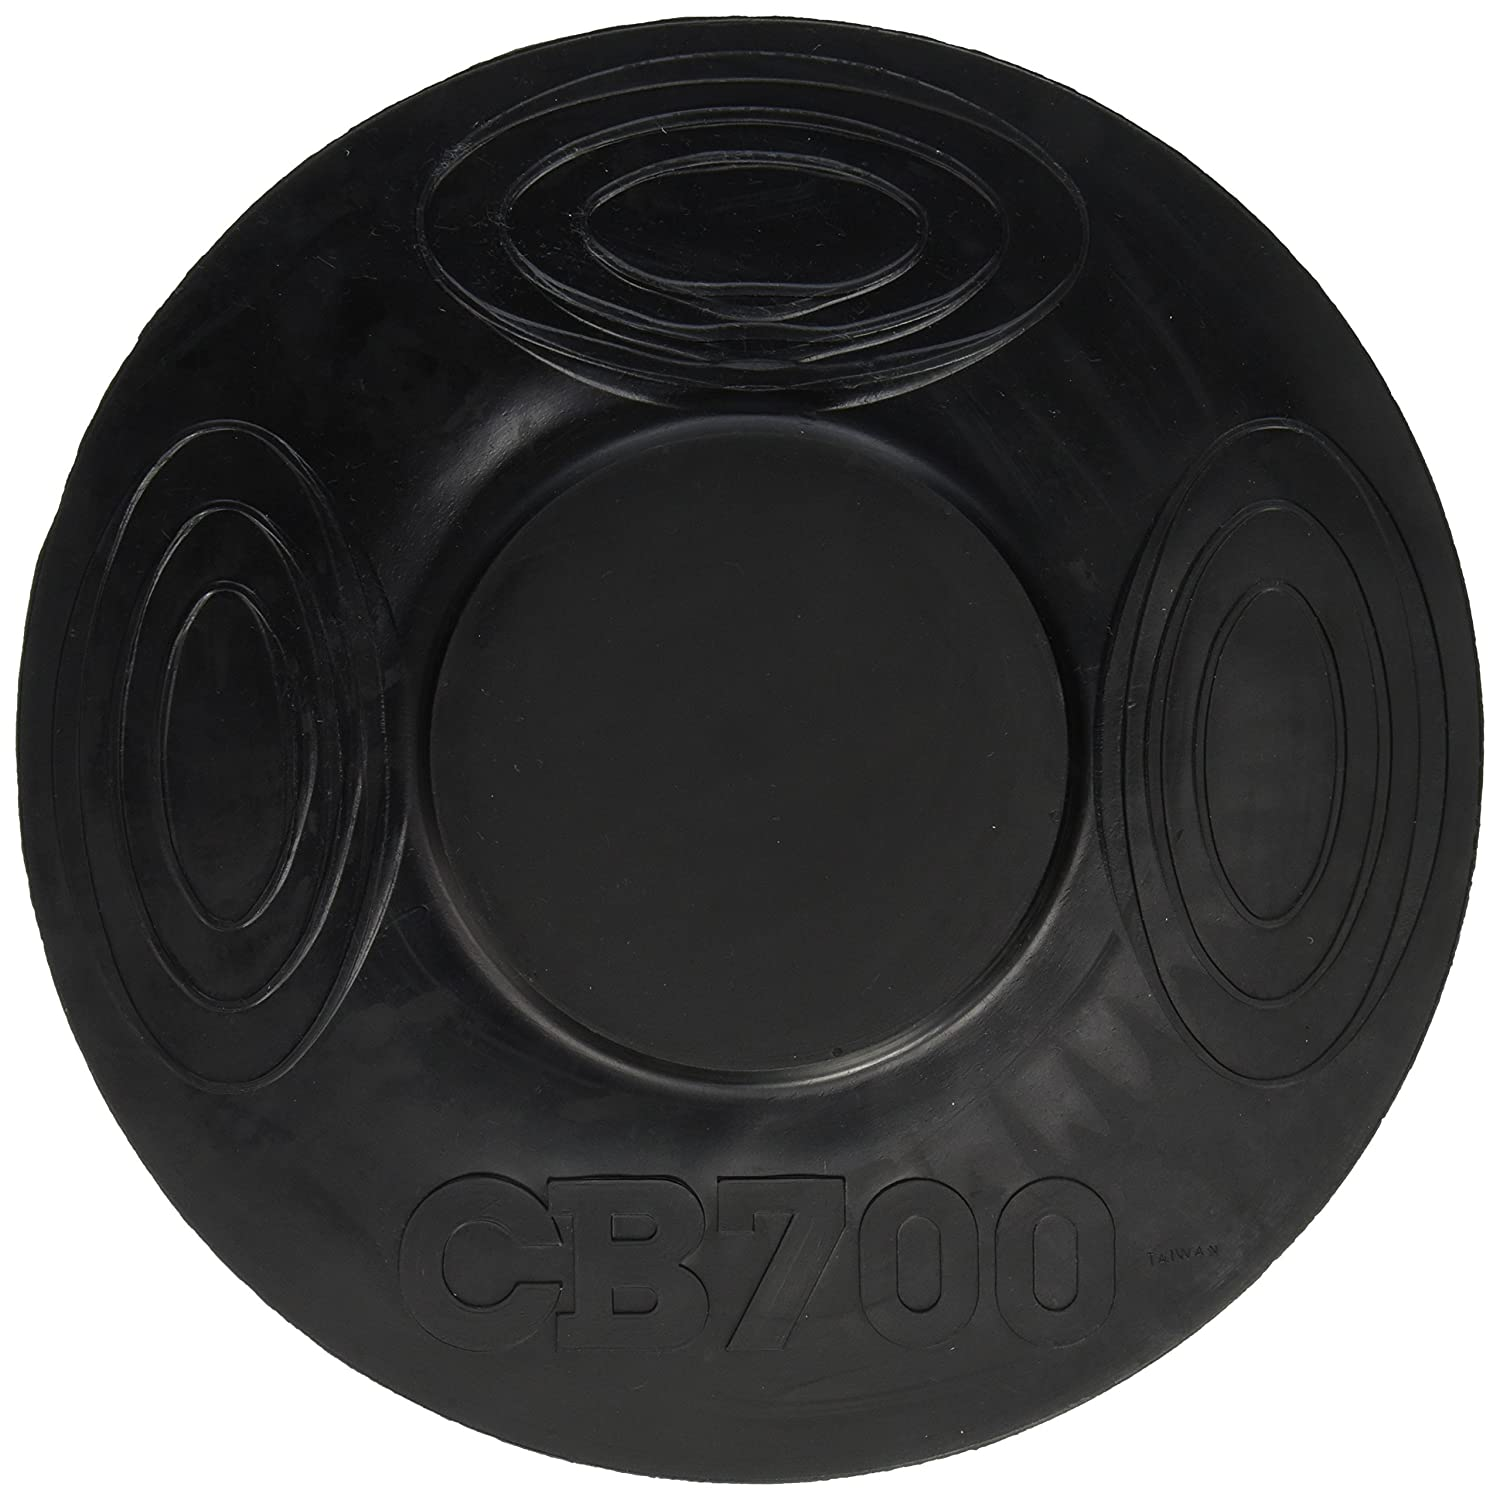 CB Drums 4288 Drum Practice Pad CB Educational